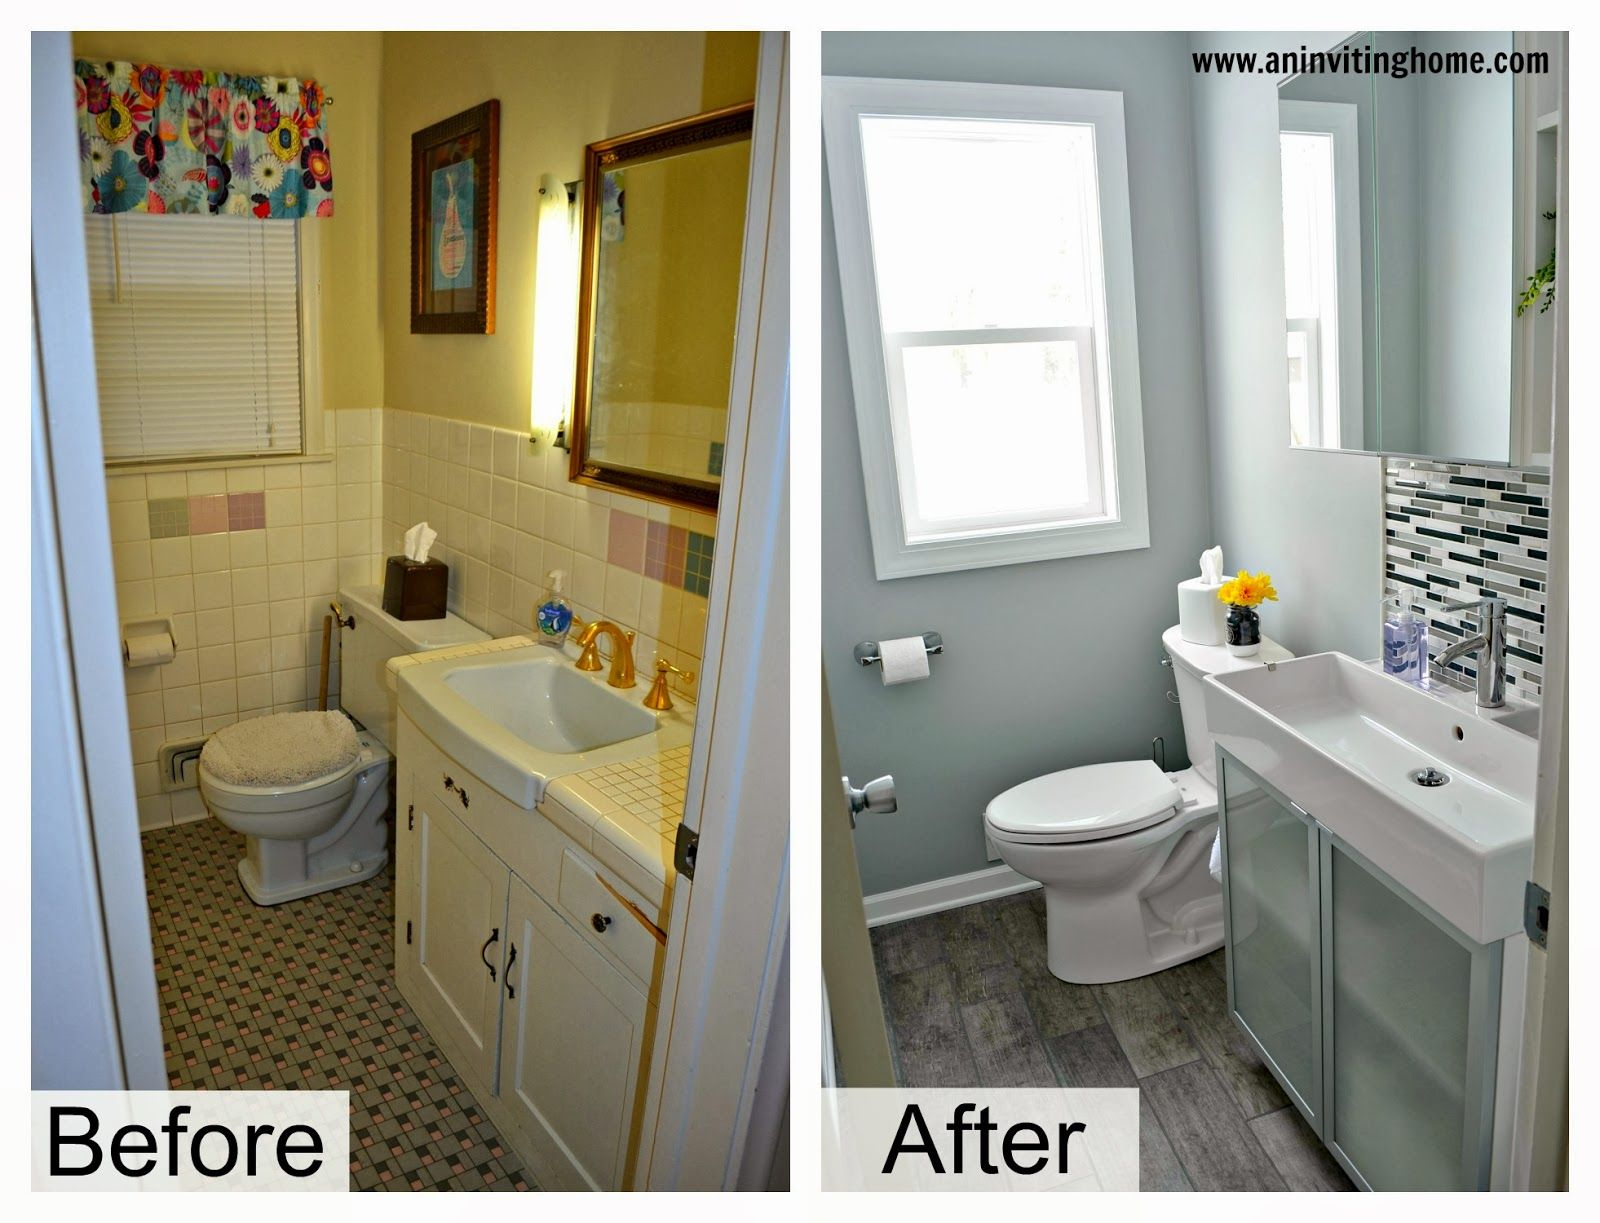 A Modern Functional Bathroom Update Small Bathroom Renovations Cheap Bathroom Remodel Inexpensive Bathroom Remodel